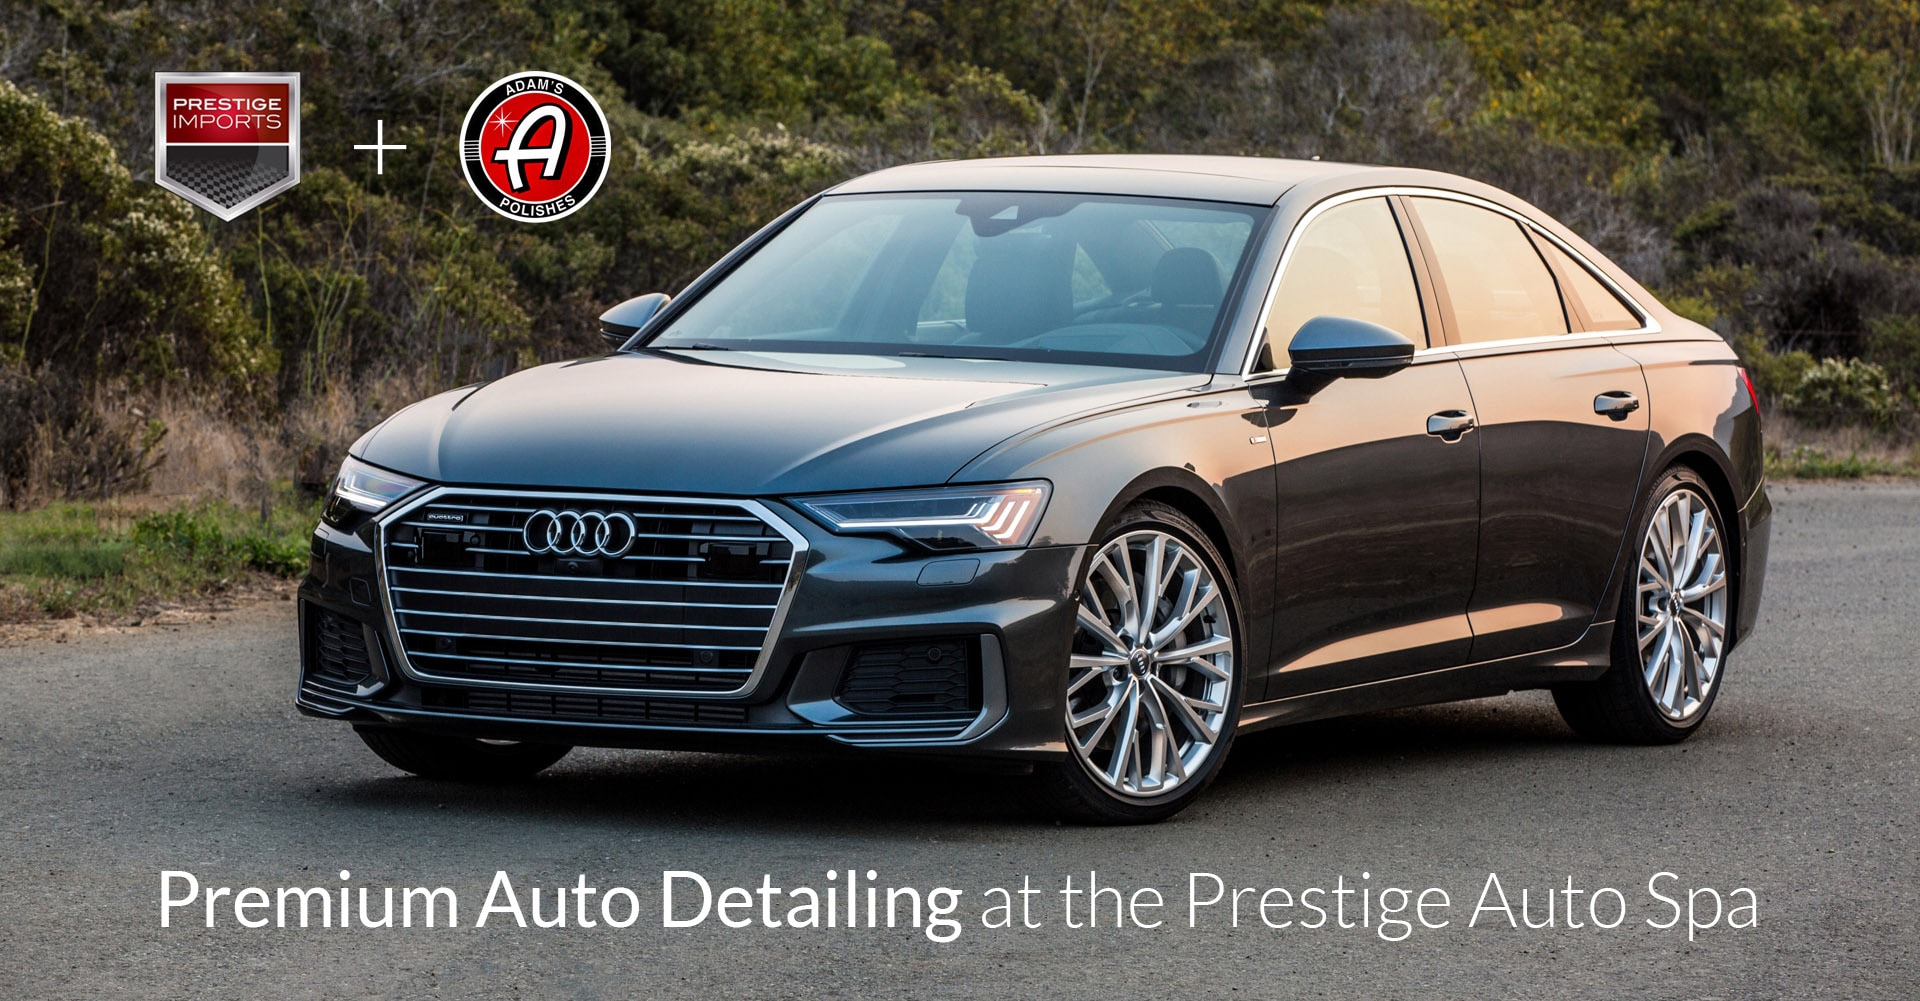 Denver automotive detailing from the Prestige Auto Spa